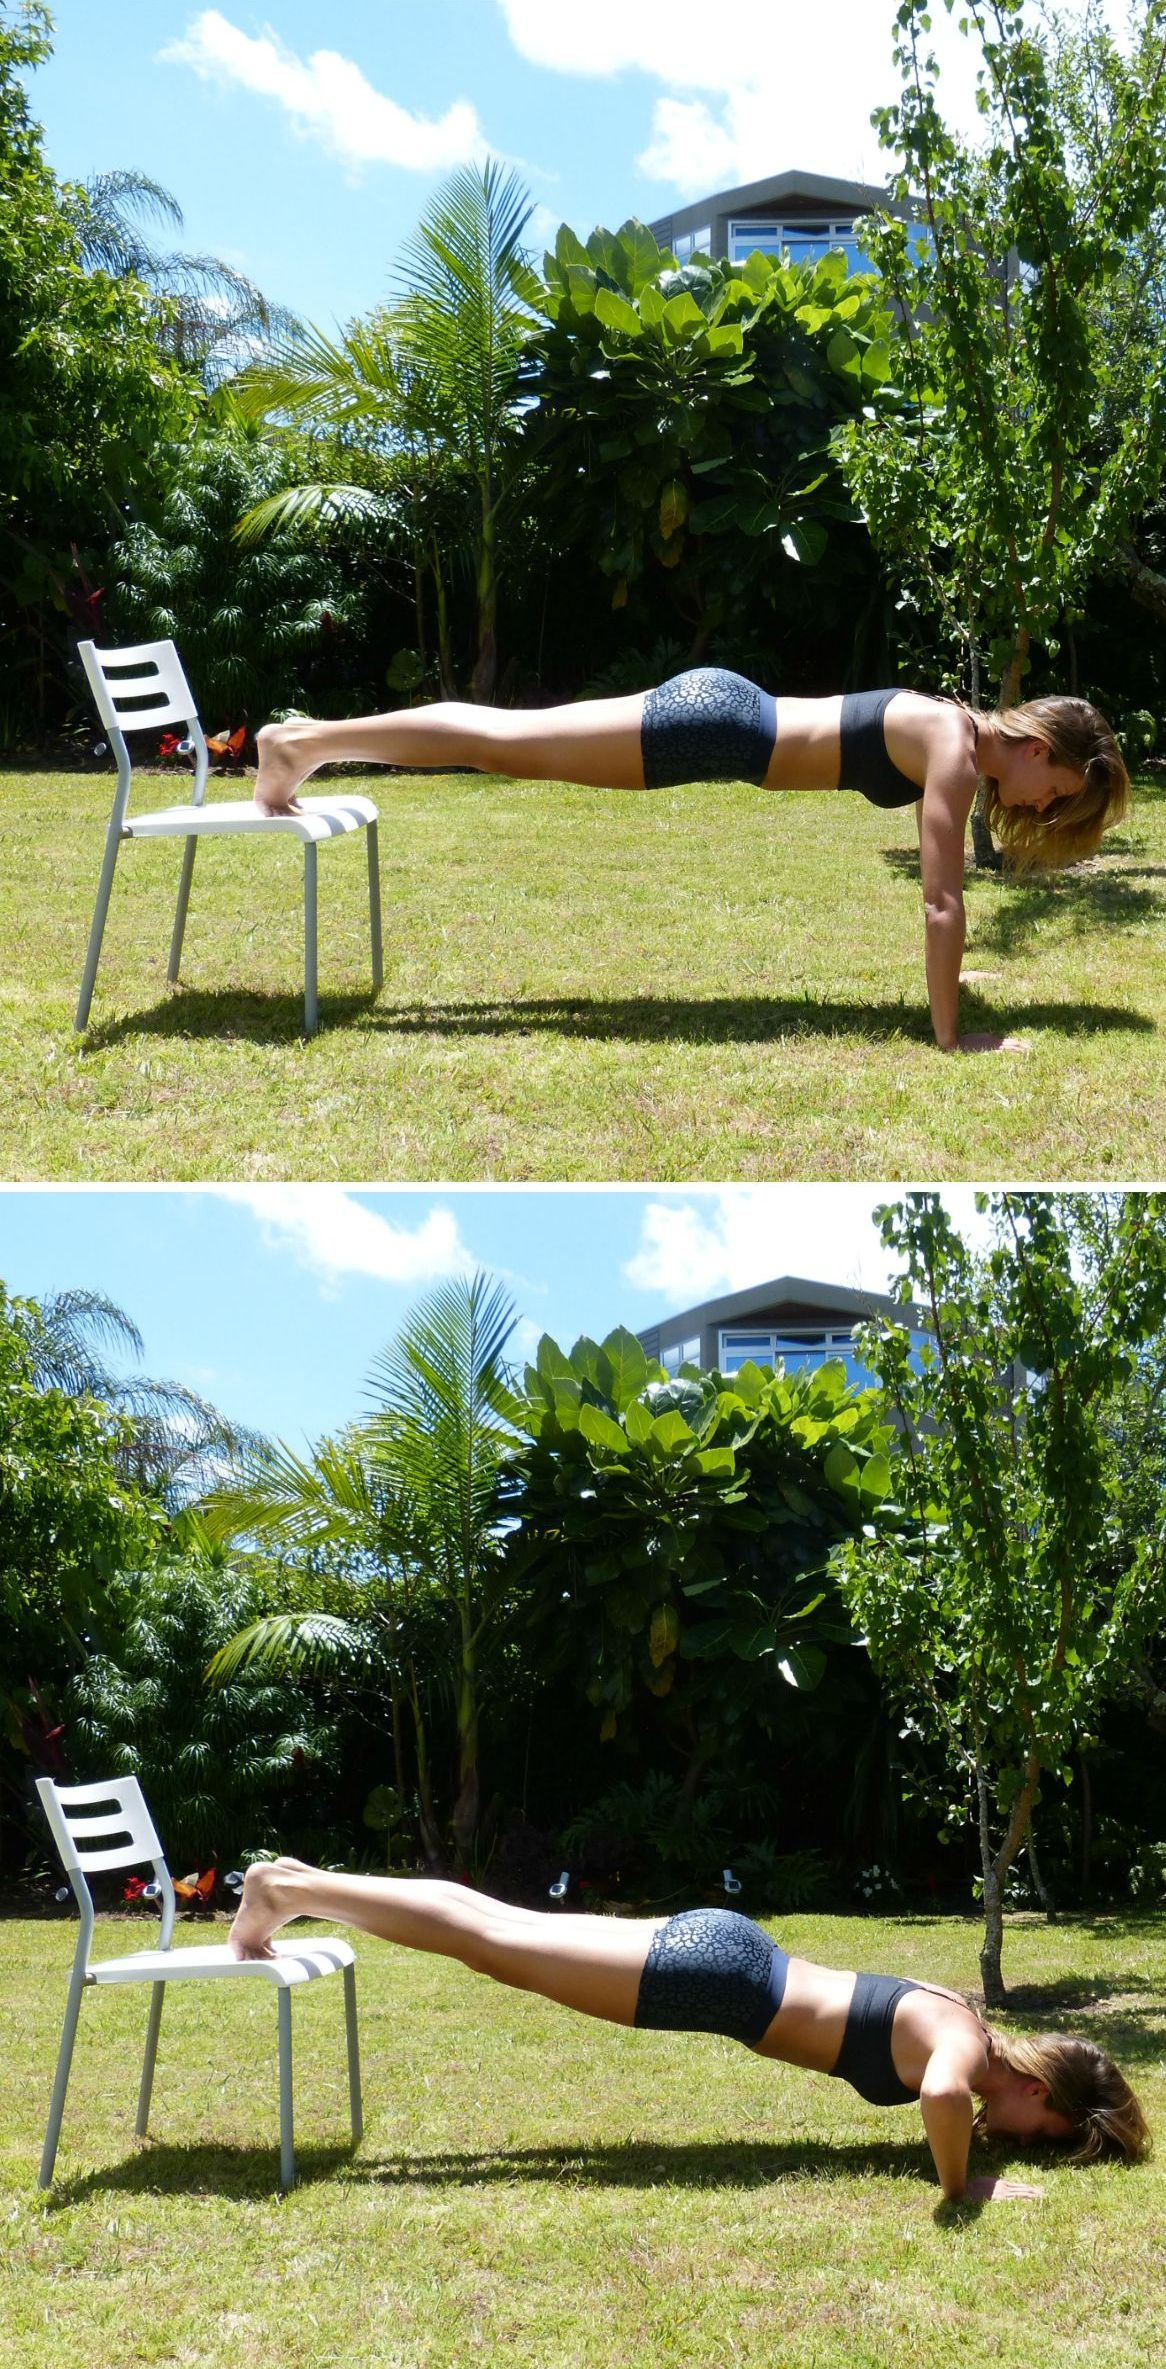 How to Get in Shape Before Your Big Day - Press Up on Chair